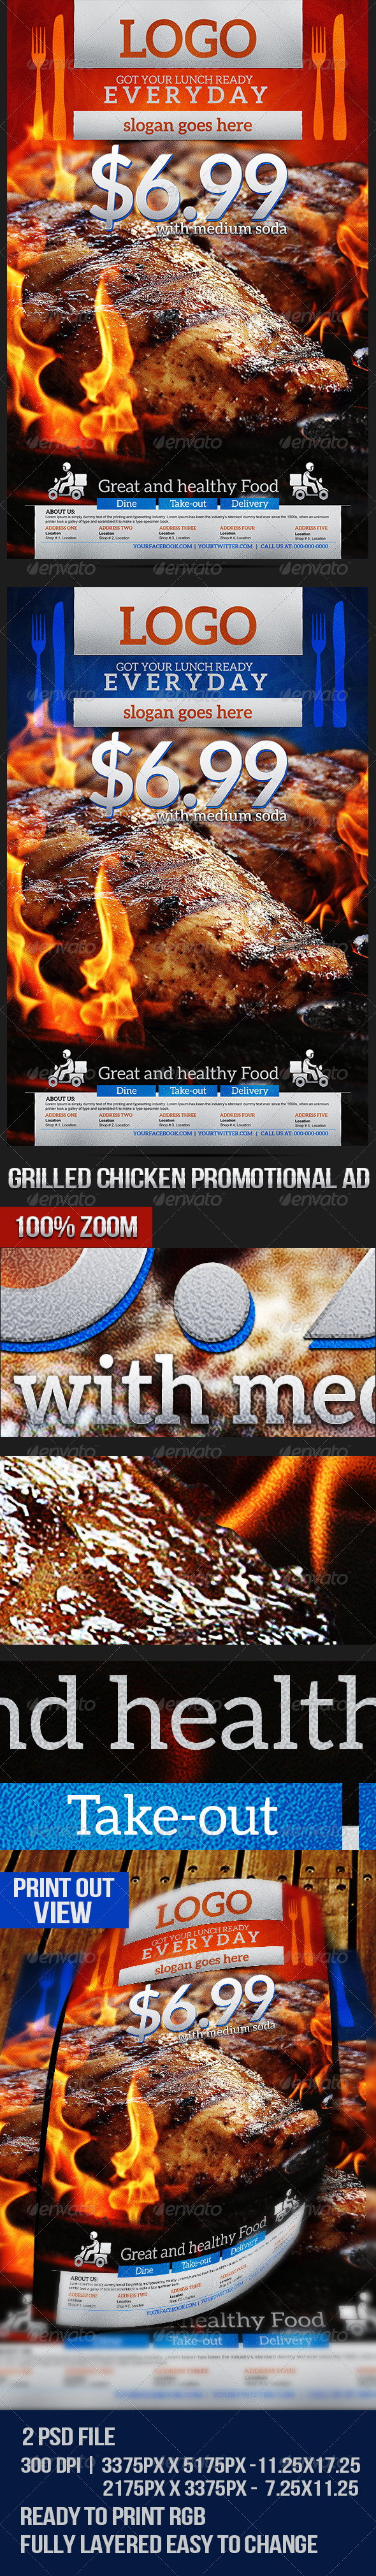 Grilled Chicken Promotional Flyer - Restaurant Flyers